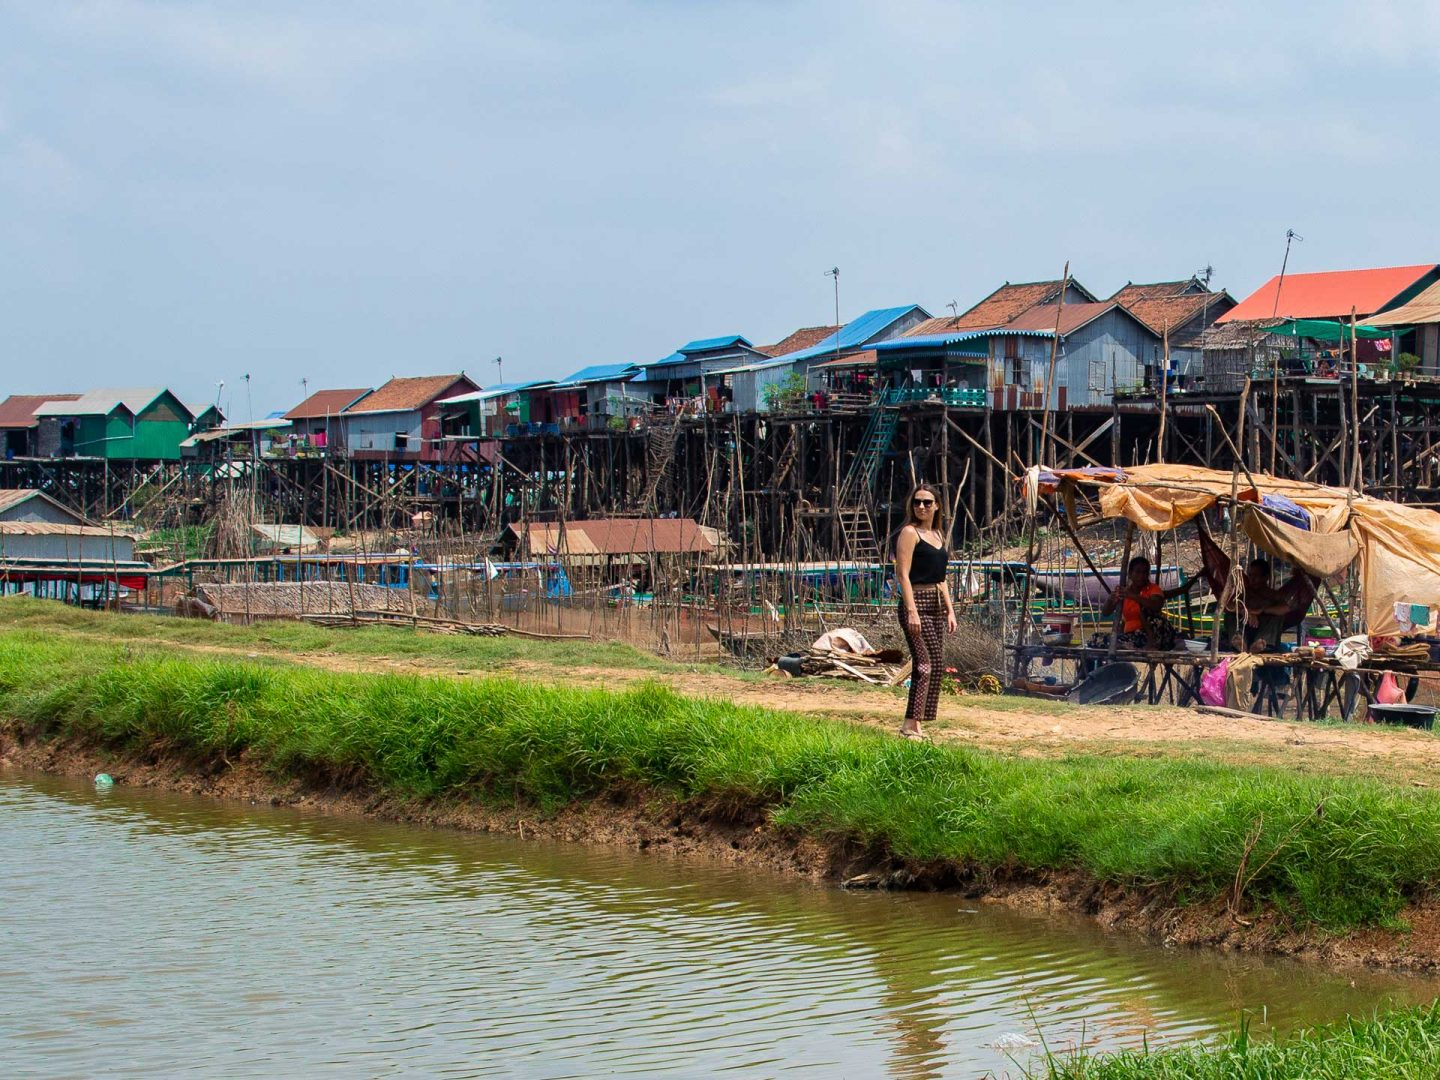 VISIT THE CAMBODIAN FLOATING VILLAGE OF KOMPONG KHLEANG DURING DRY SEASON